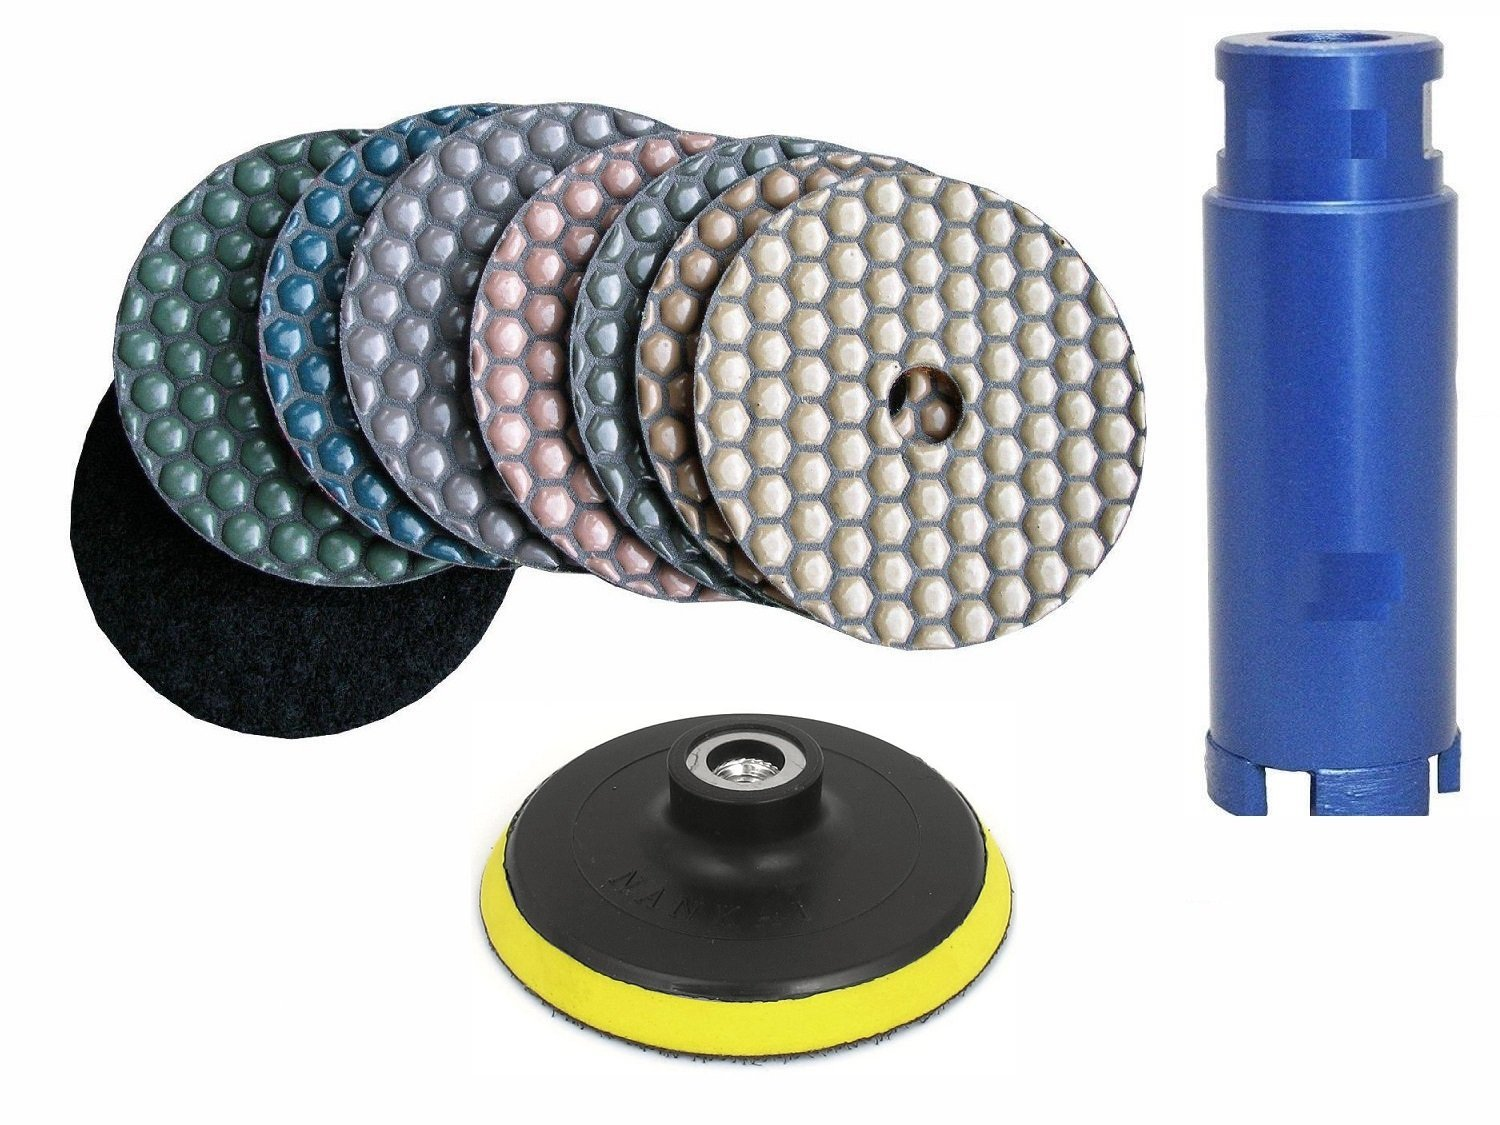 "Diamond Polishing Pad 4"" Dry 9+1 Pieces 3 Inch Diamond Core Drill Bit Hole Saw Granite Concrete Marble Travertine Terrazzo sink hole cutout"